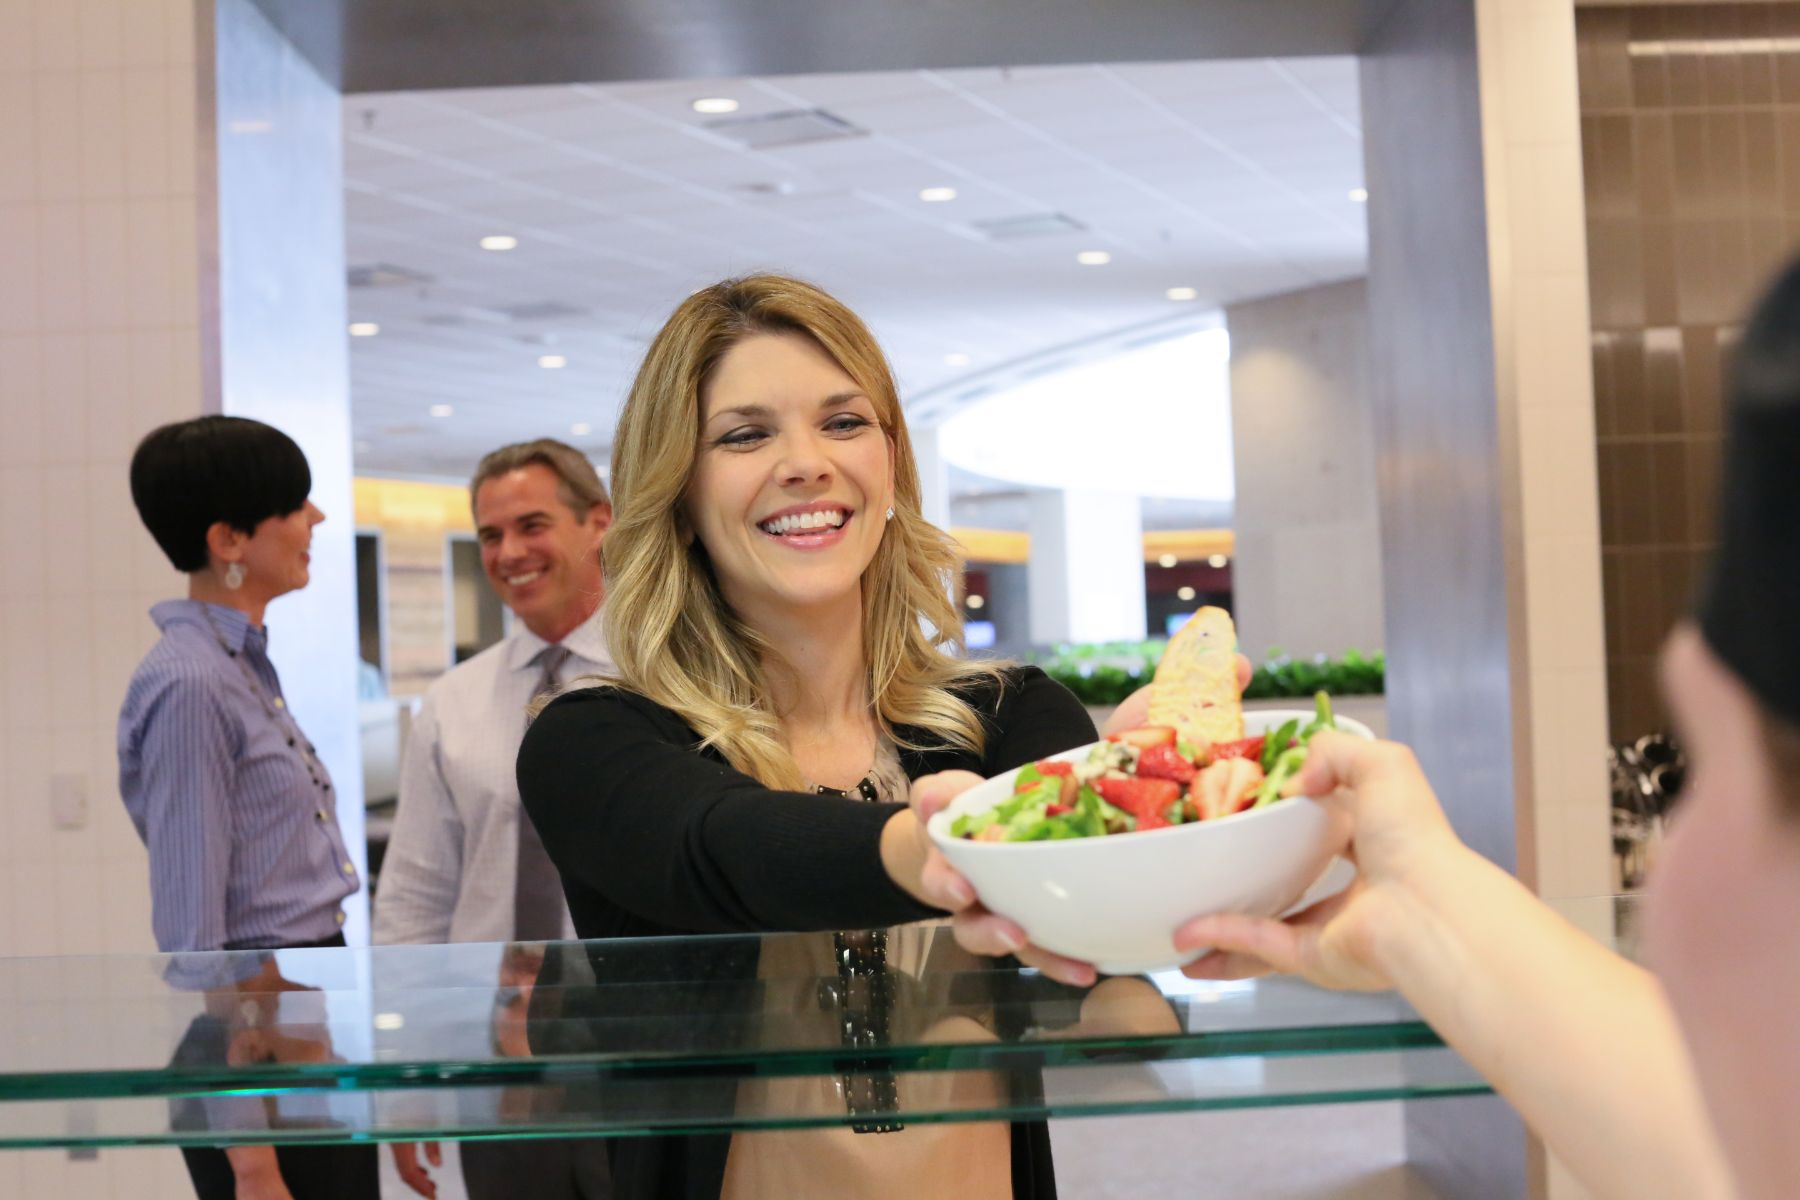 Guest receives salad from food service employee